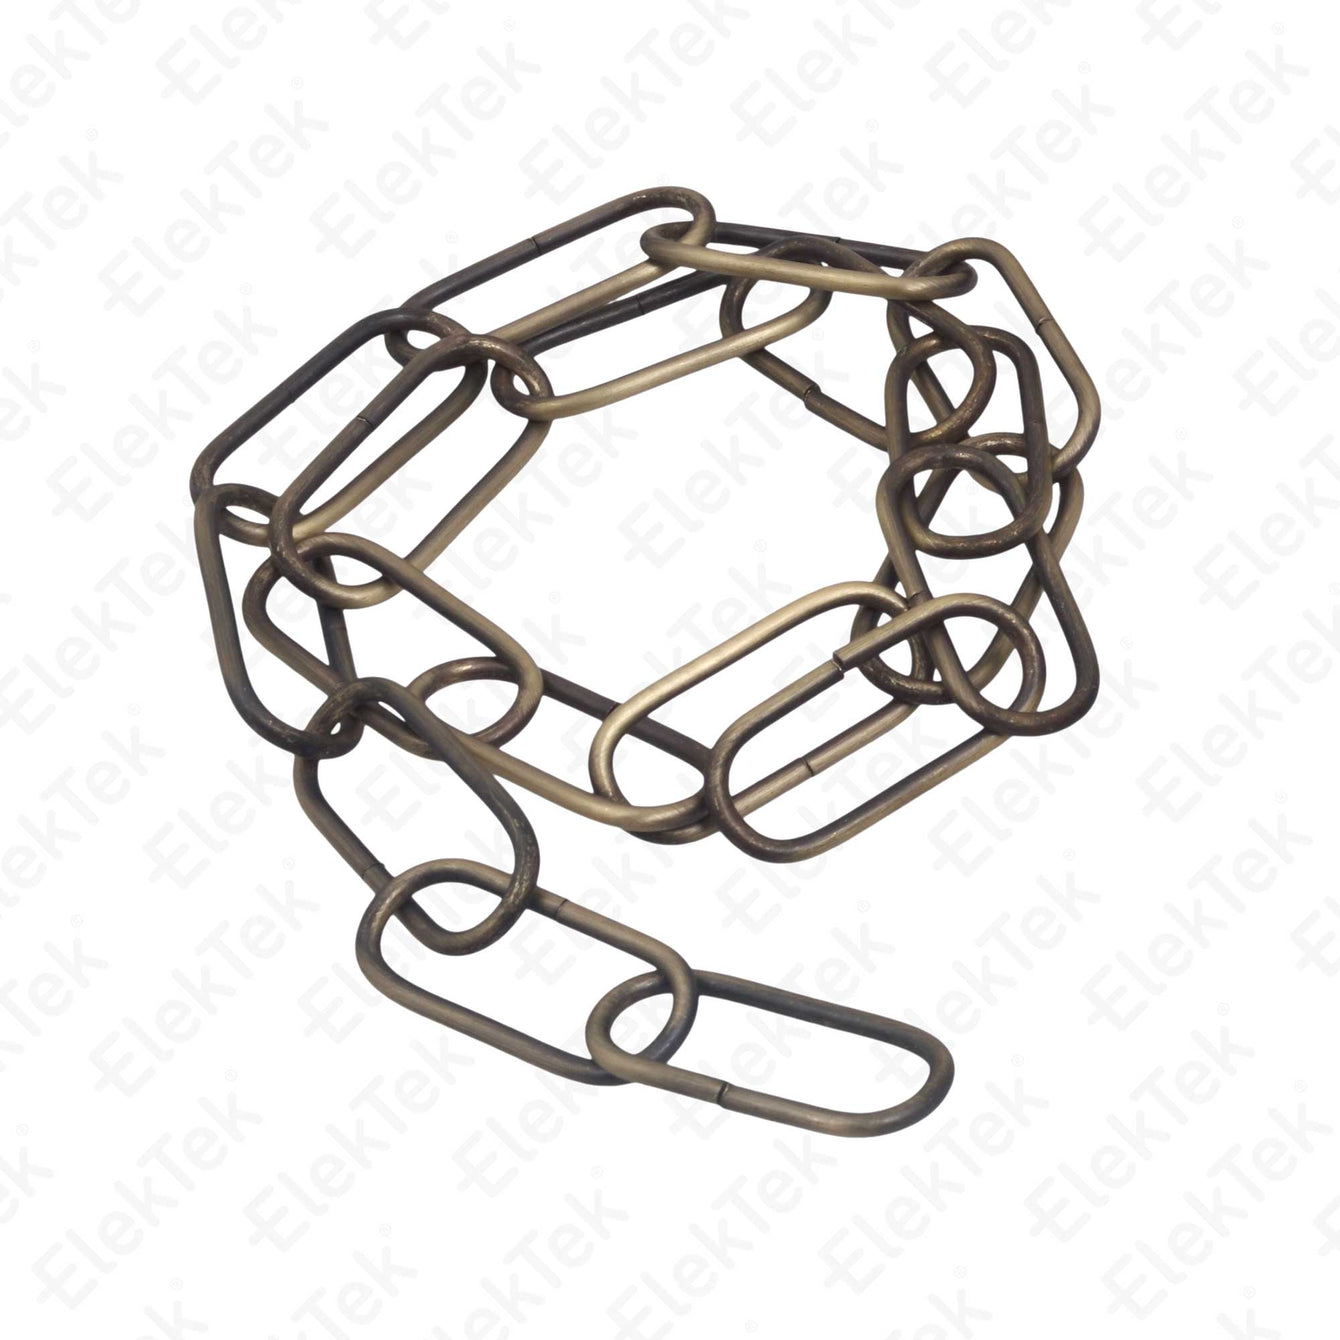 ElekTek Open Link Chain For Chandelier and Lighting Medium 38mm x 15mm Per Linear Metre Steel